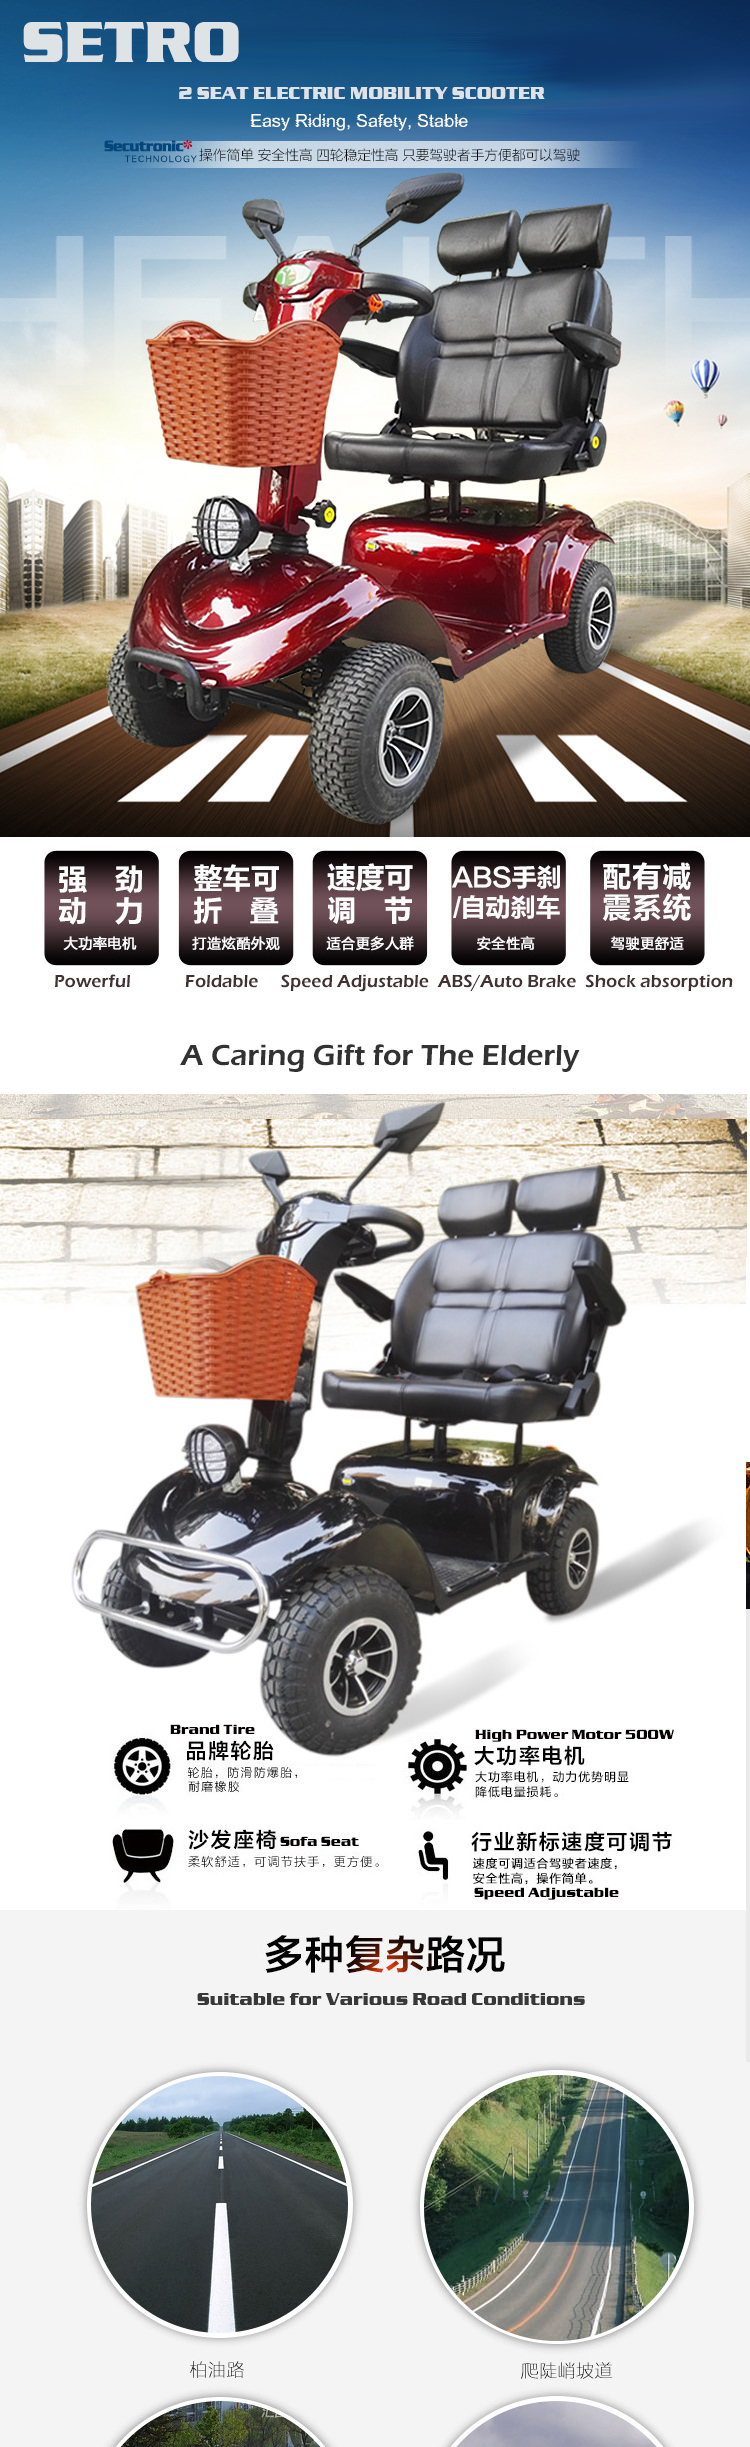 Adult 48V 4 Wheel 2 Seat Rain Cover Canopy Mobility Electric Scooter With Roof For Elder Disabled